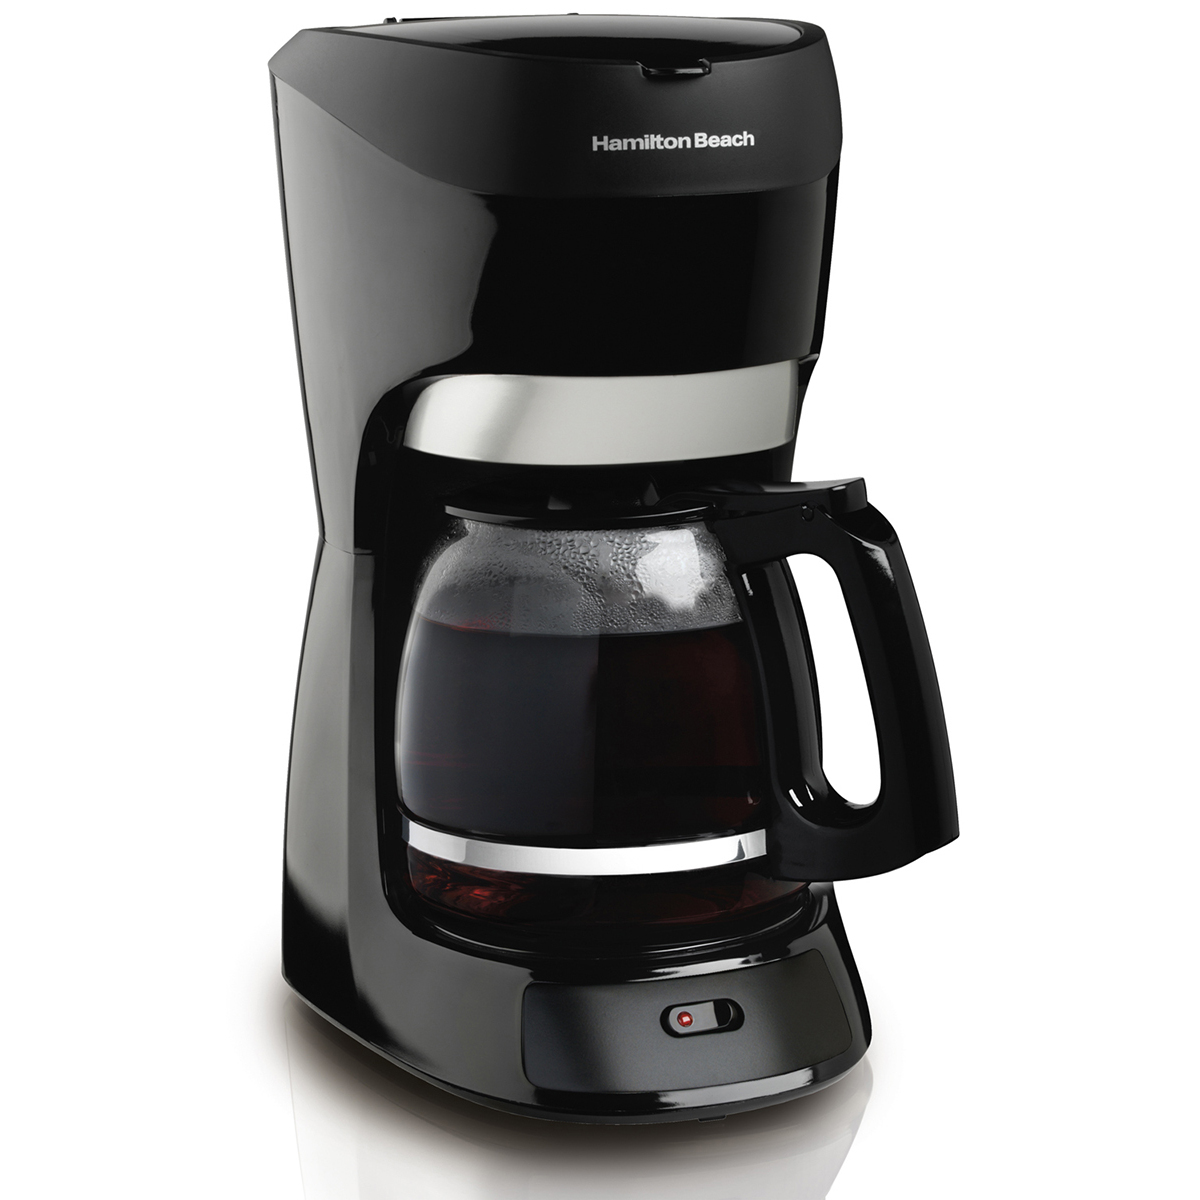 12 Cup Coffee Maker (49317)